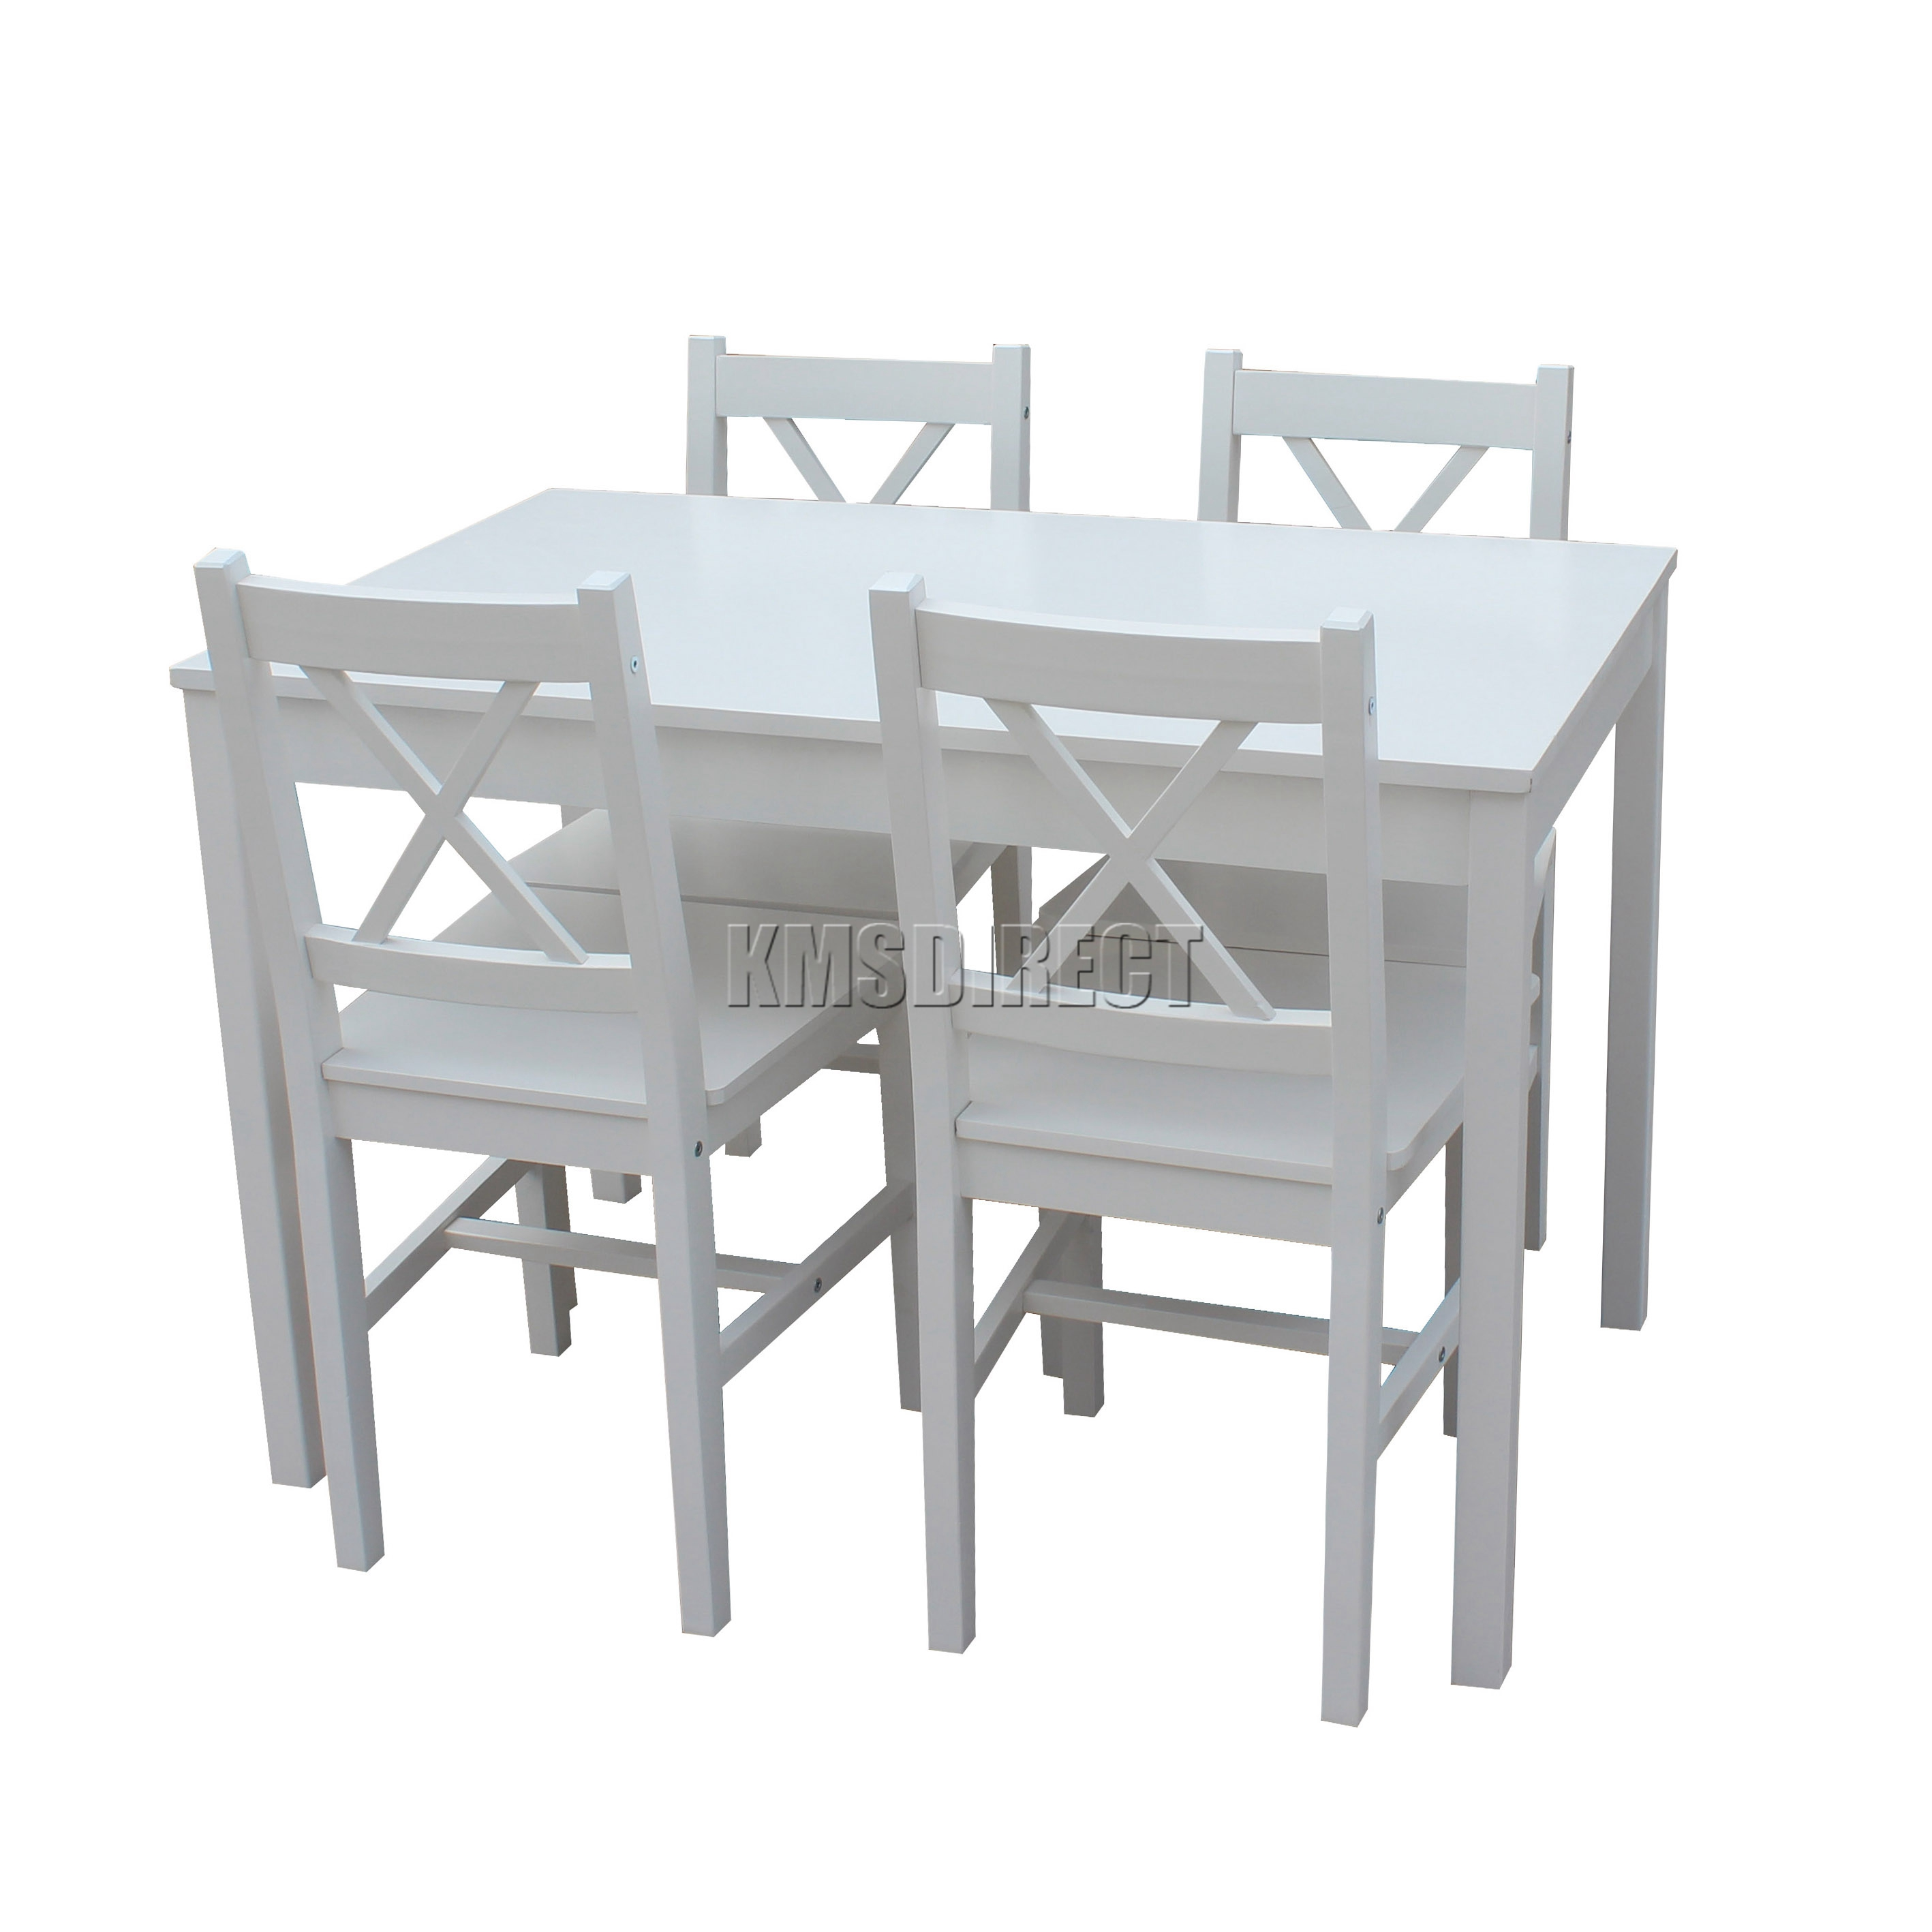 Details About Spare Repair Solid Wooden Dining Table With 4 Chairs Set Kitchen Furniture White